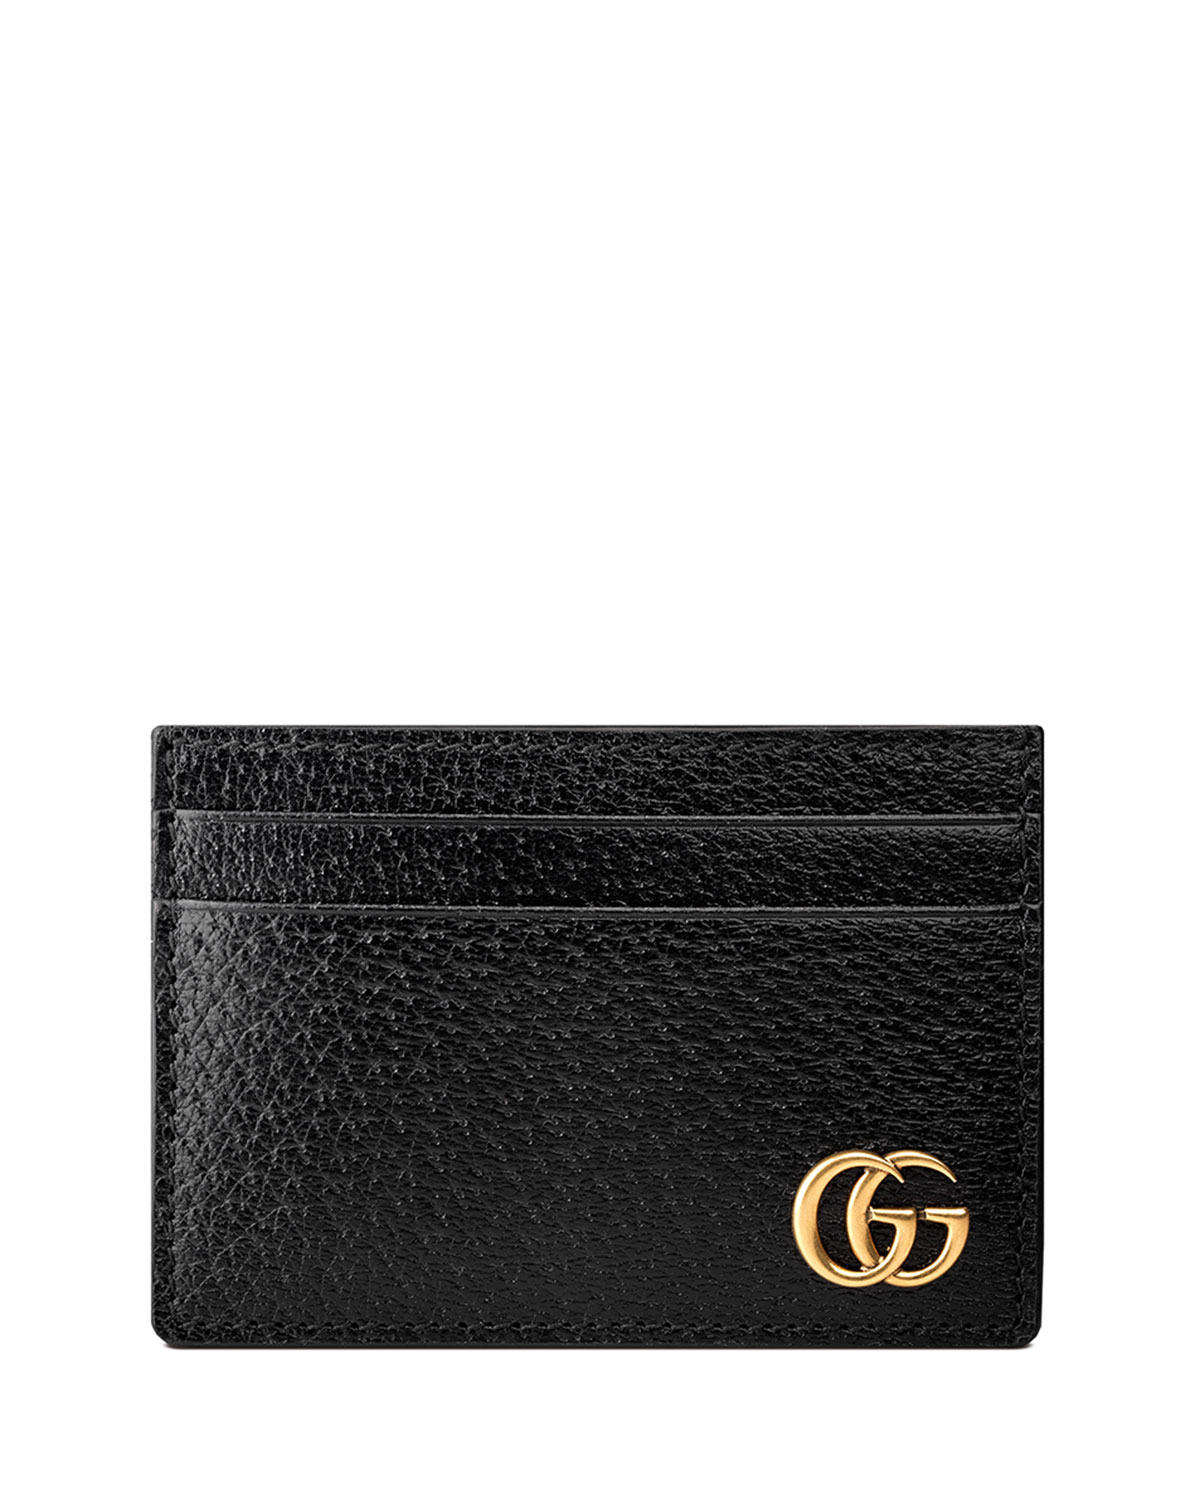 f7abb054536 Gucci Men s Leather Credit Card Case with Money Clip